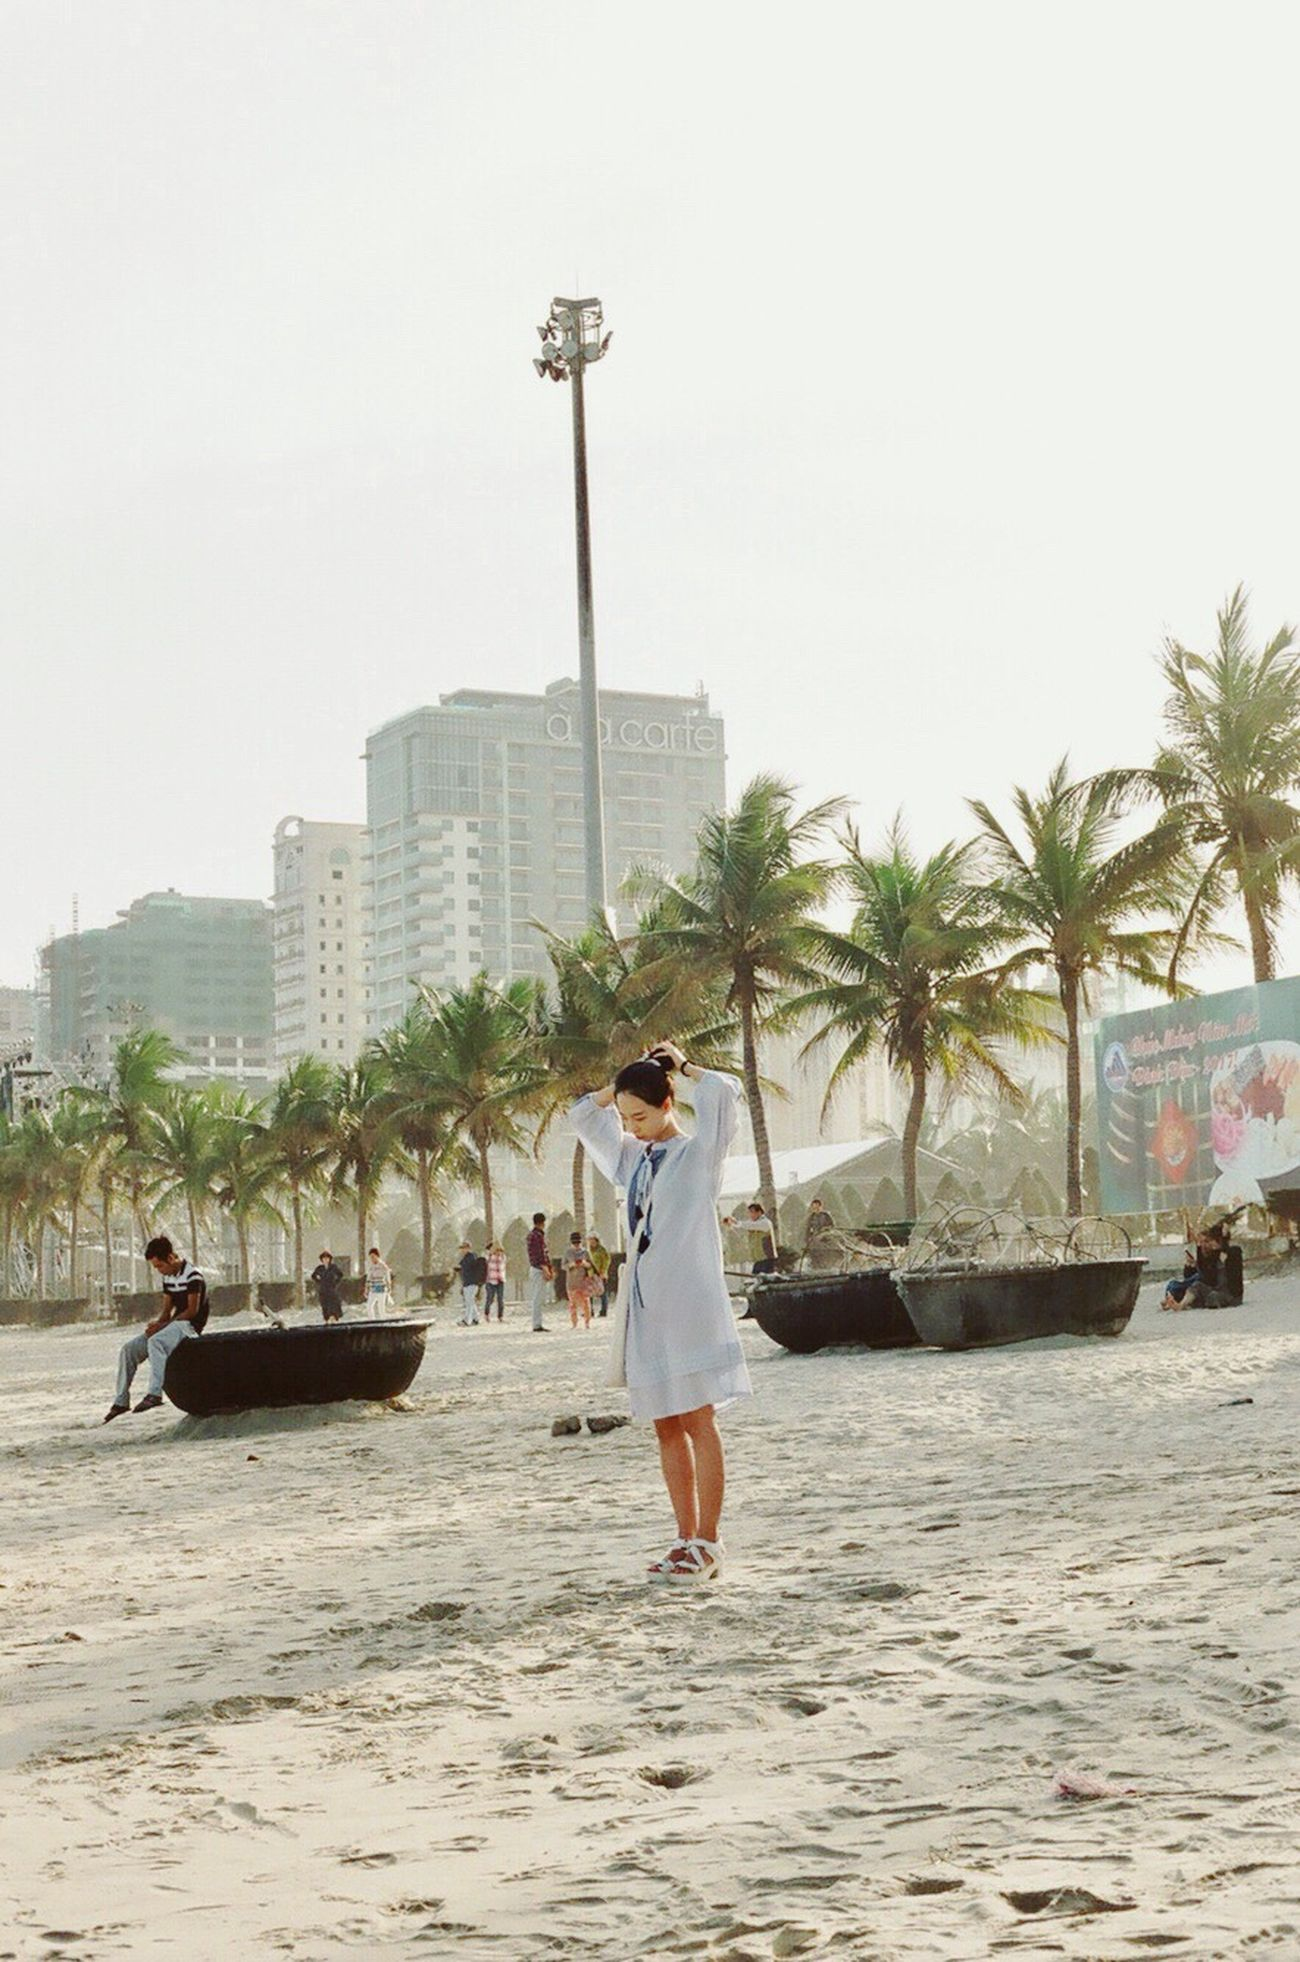 Filmisnotdead Filmphotography Holiday Light And Shadow Relaxing Beauty In Nature Palm Tree Vacations Beach Travel Destinations Outdoors City Women Capture The Moment Da Nang Mykhebeach Fashion Relaxing Time Nature Sand Sky Real People